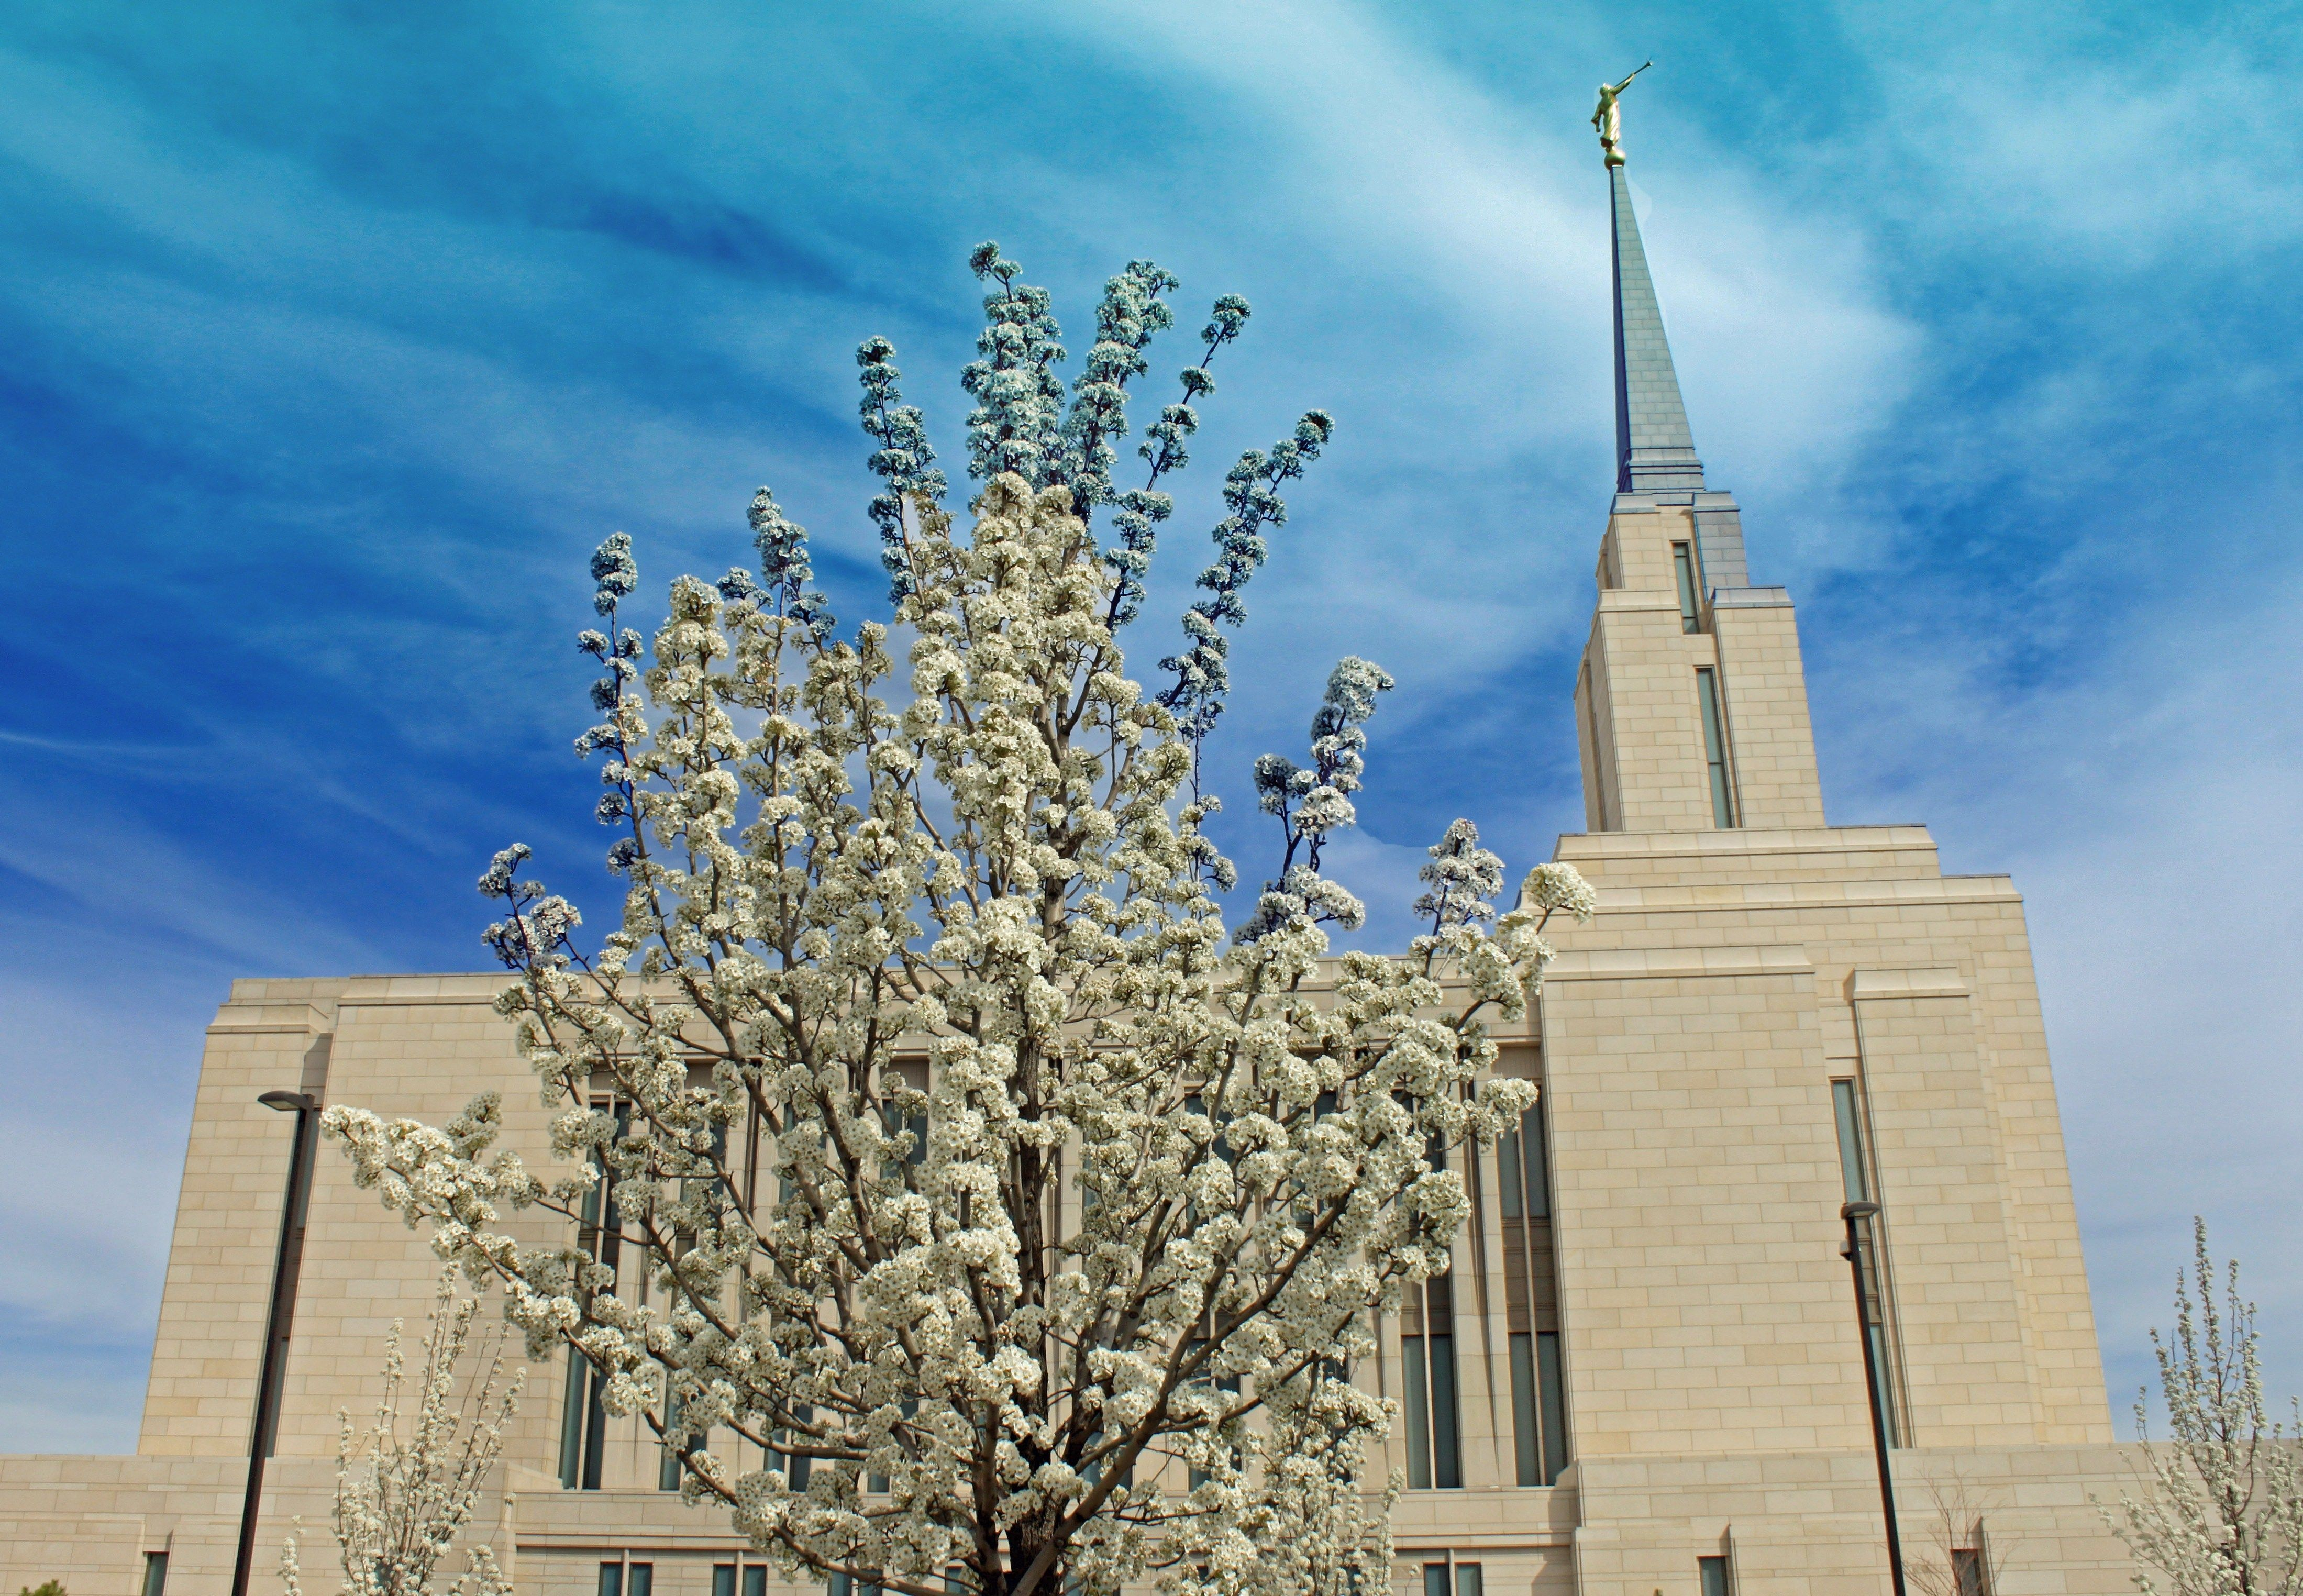 The Oquirrh Mountain Utah Temple side view, including the exterior of the temple, the spire, and scenery.